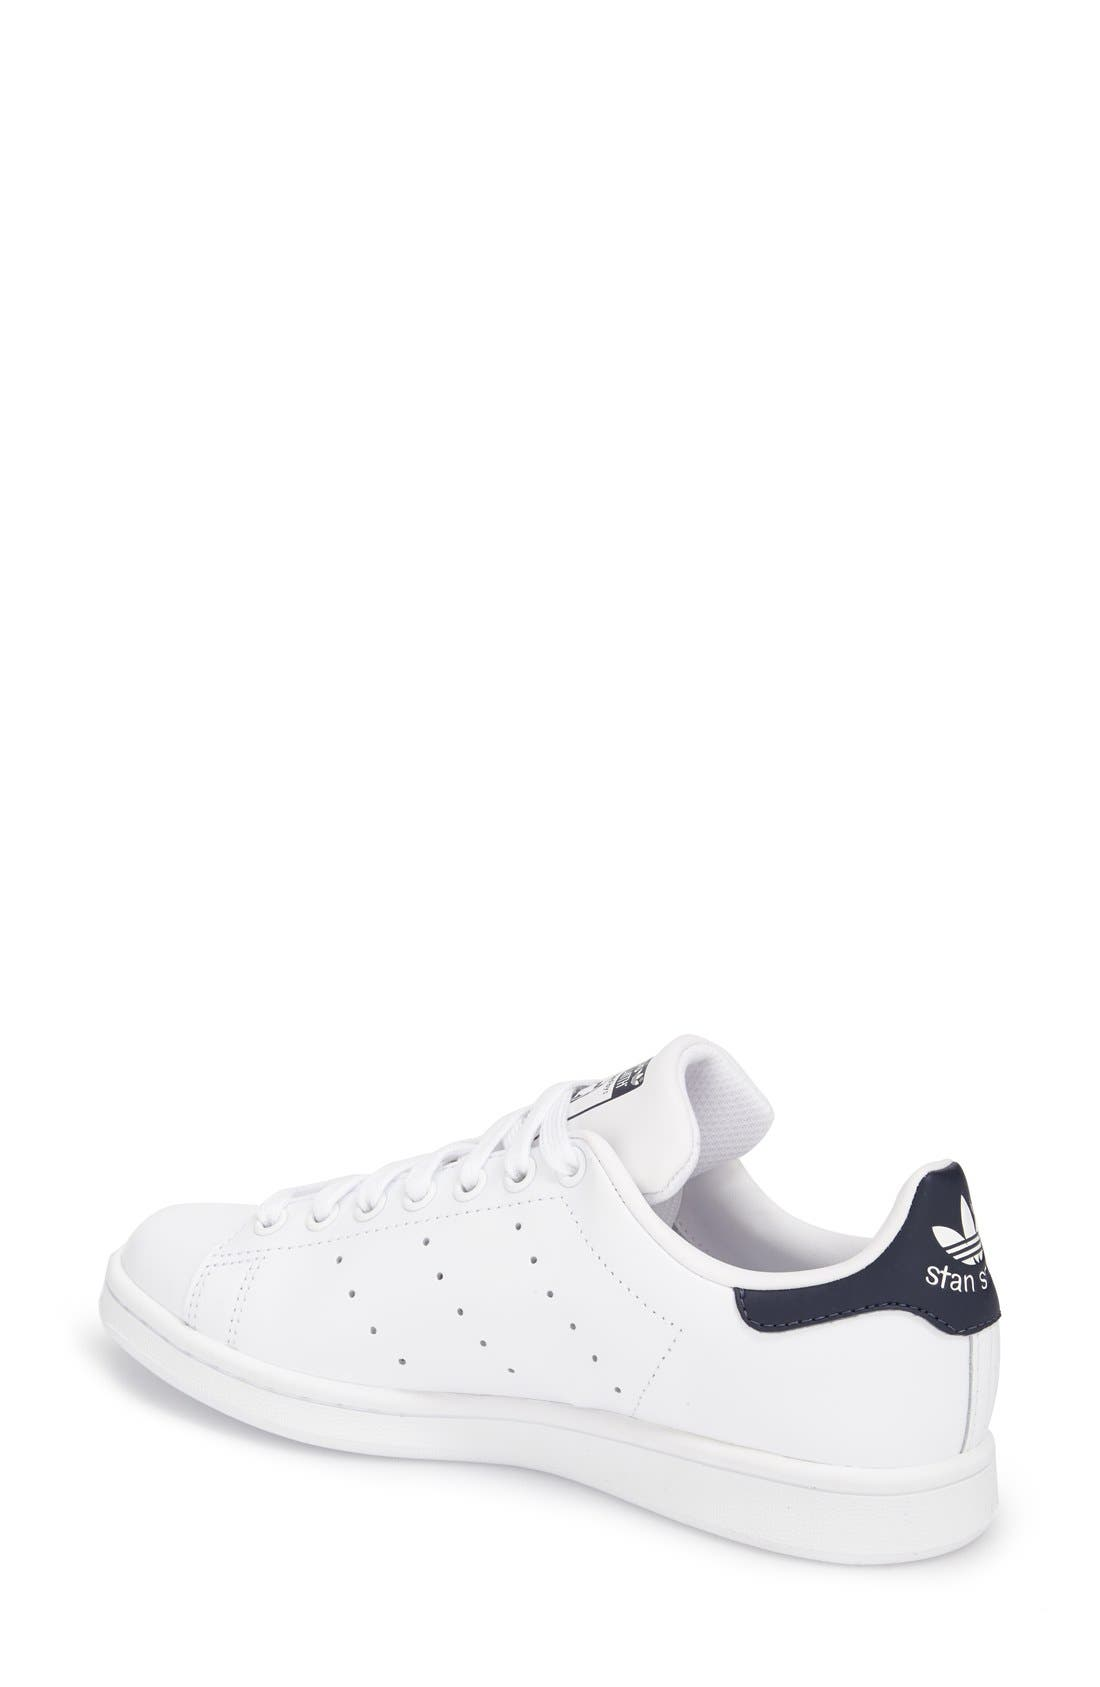 Stan Smith Sneaker,                             Alternate thumbnail 2, color,                             White/ Dark Blue